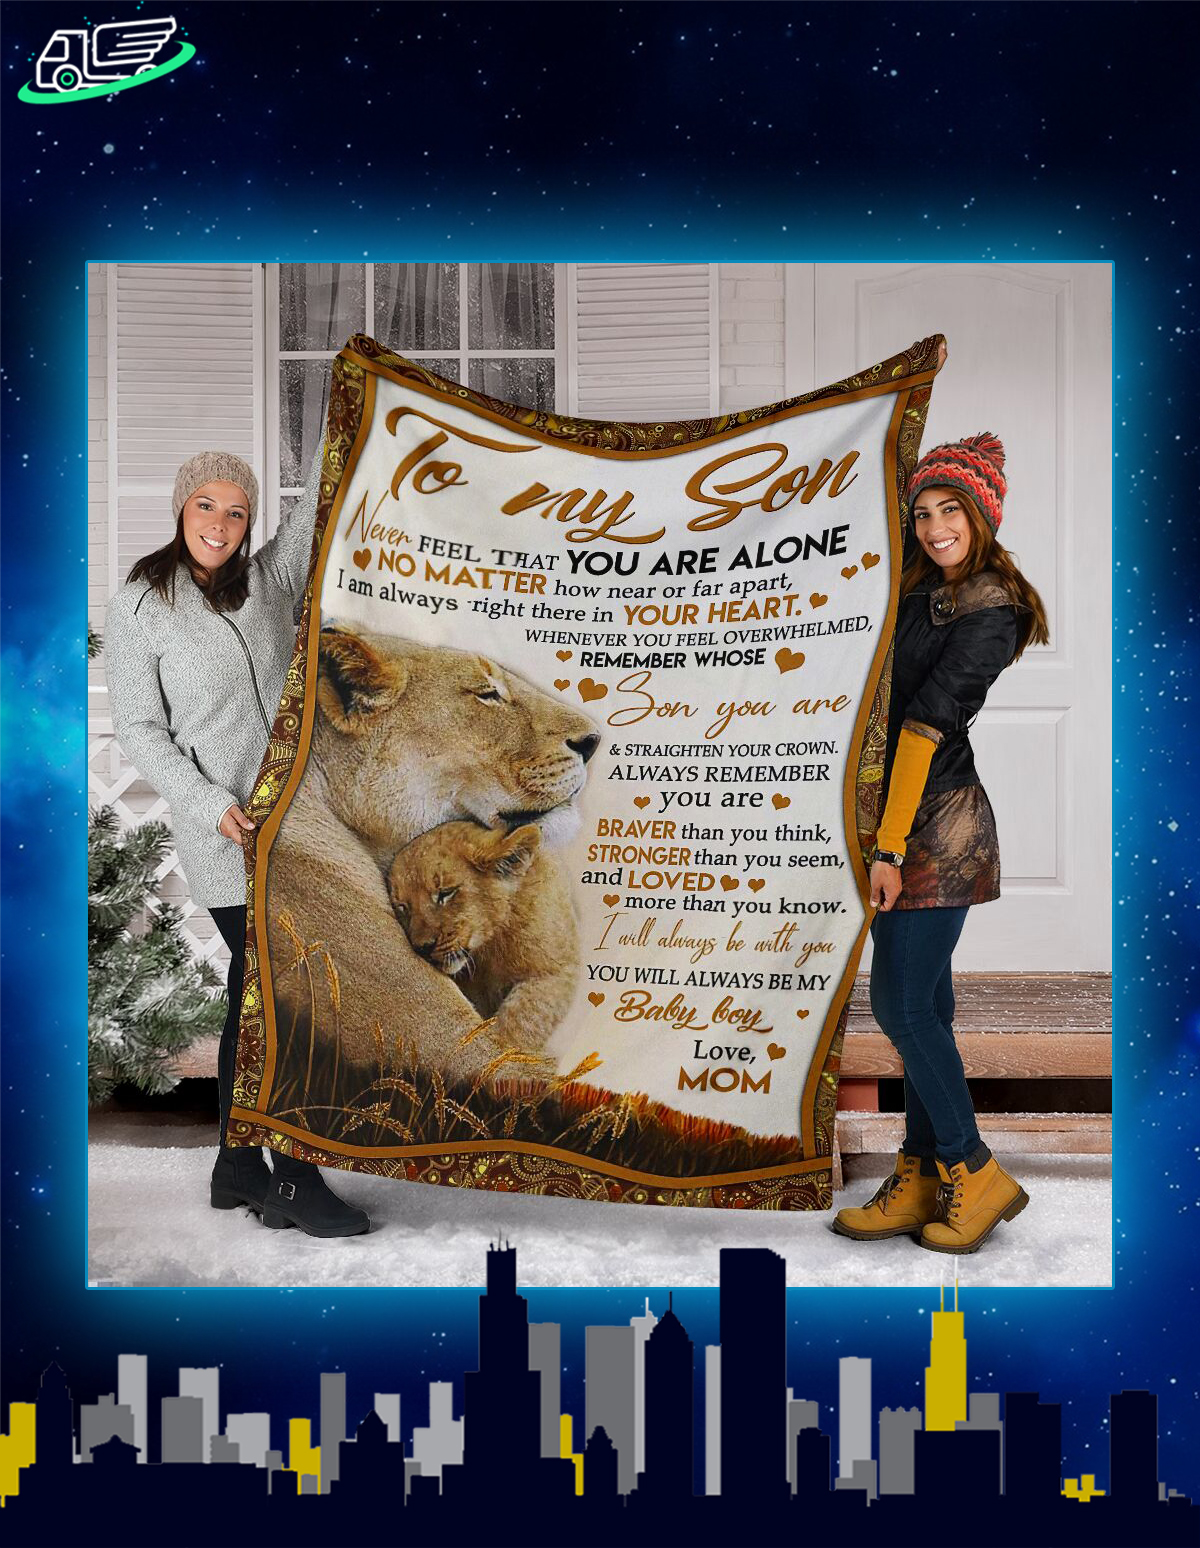 Lion to my son never feel that you are alone blanket